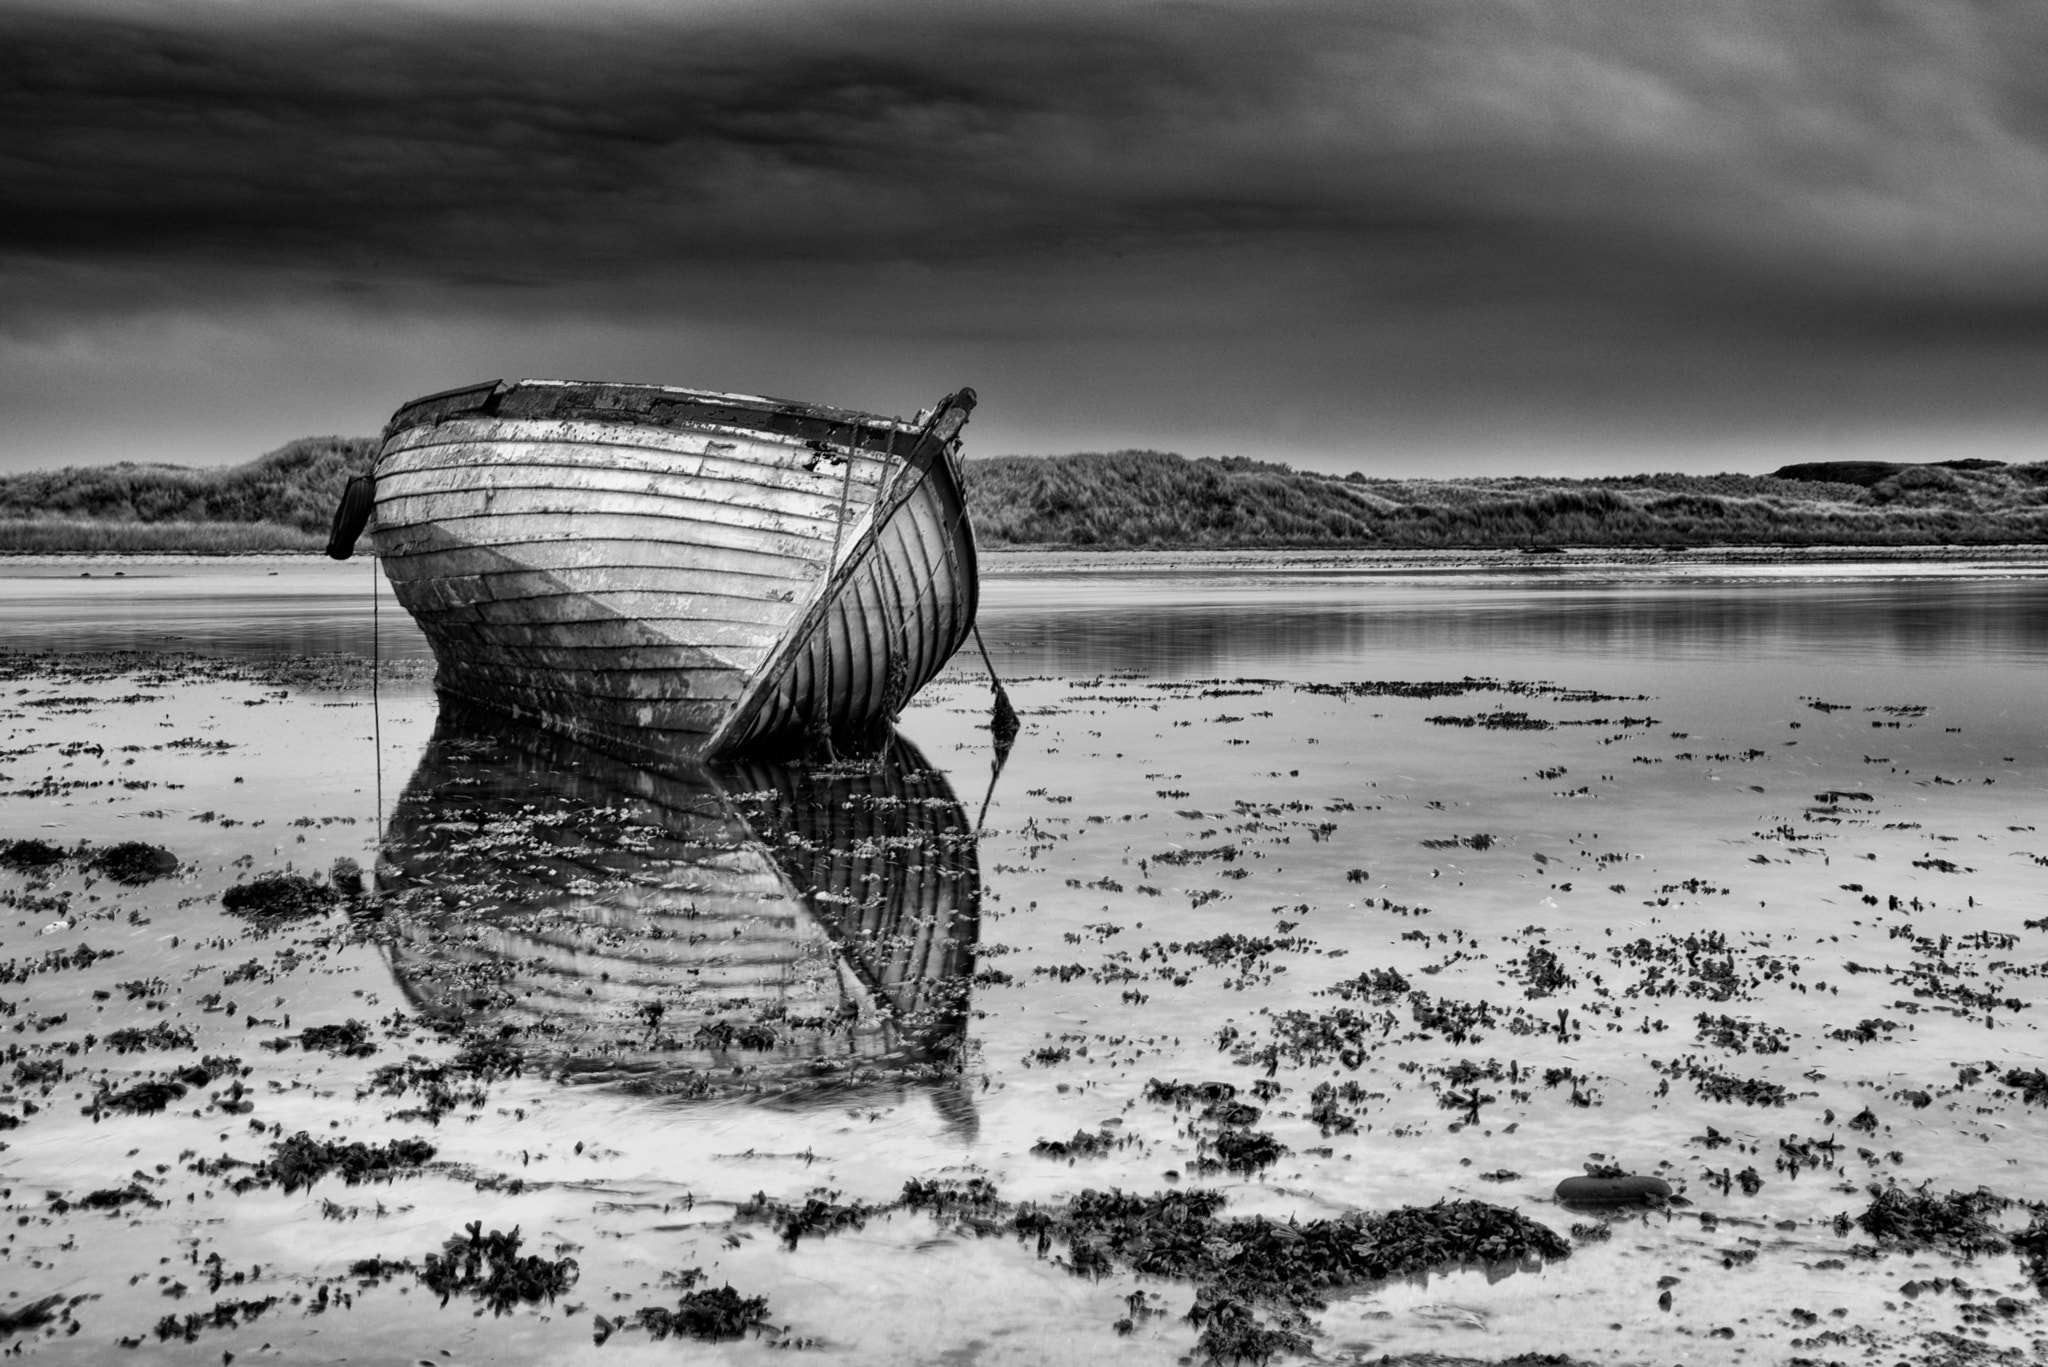 Photograph Bunagee boat by Trevor Cole on 500px